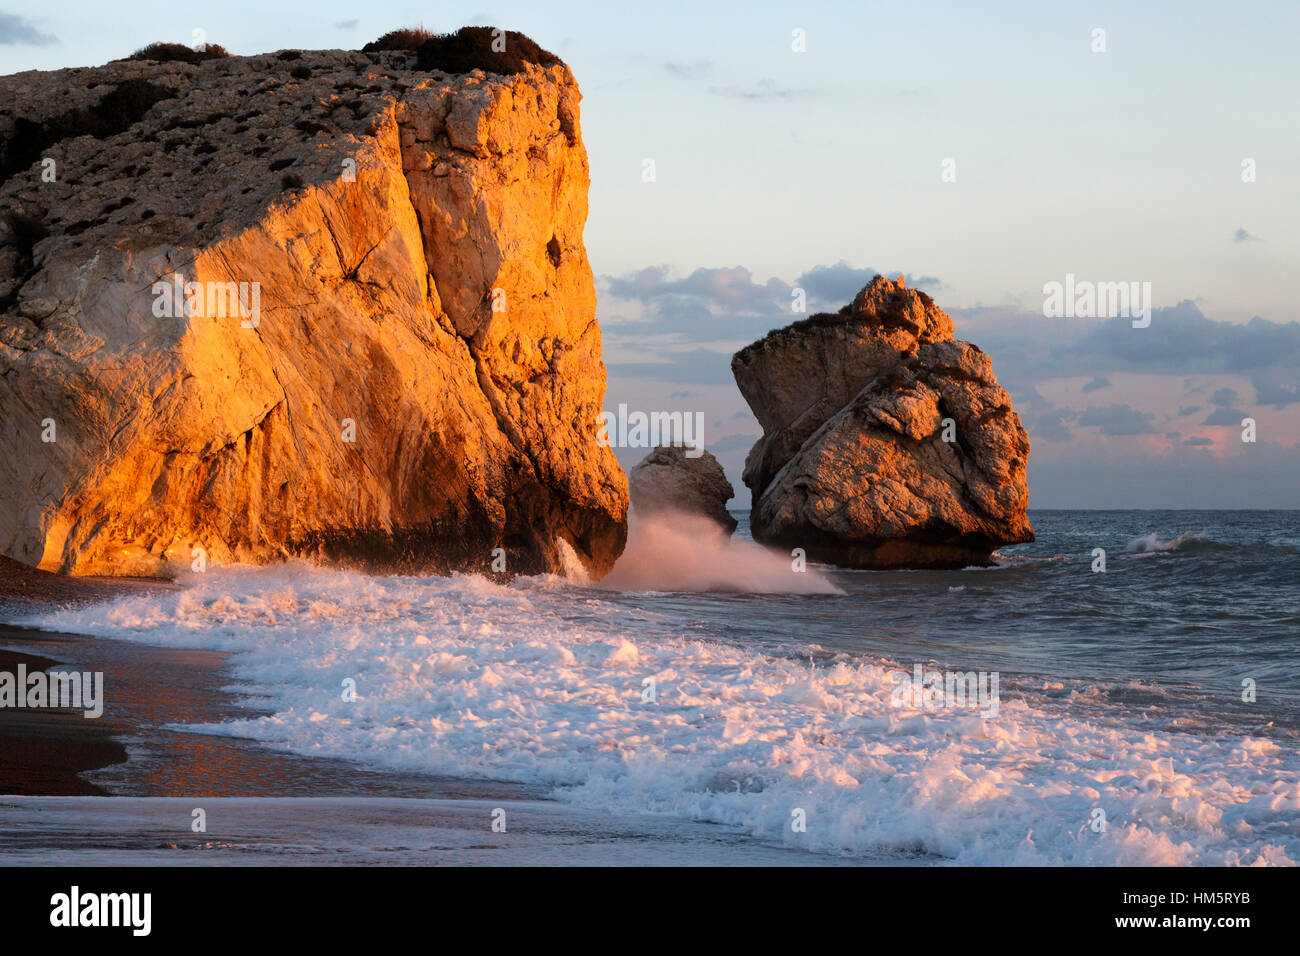 petra tou romiou stockfotos petra tou romiou bilder alamy. Black Bedroom Furniture Sets. Home Design Ideas